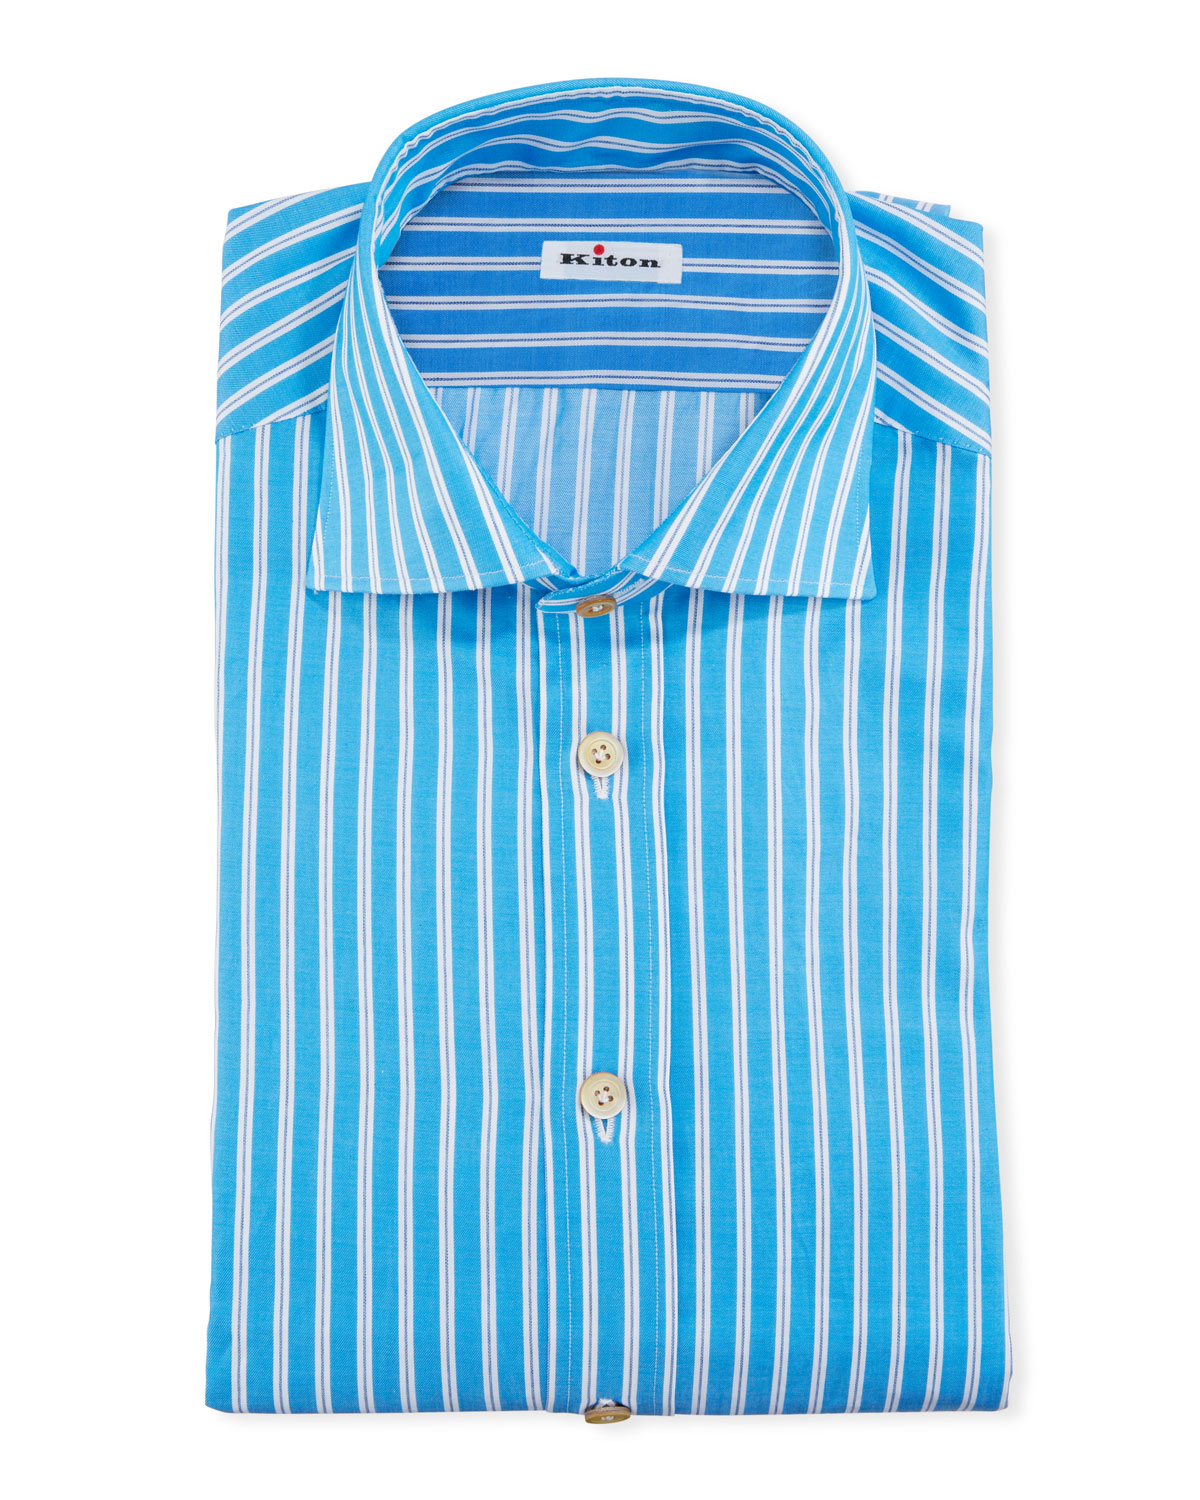 Kiton Dresses MEN'S STRIPED COTTON DRESS SHIRT